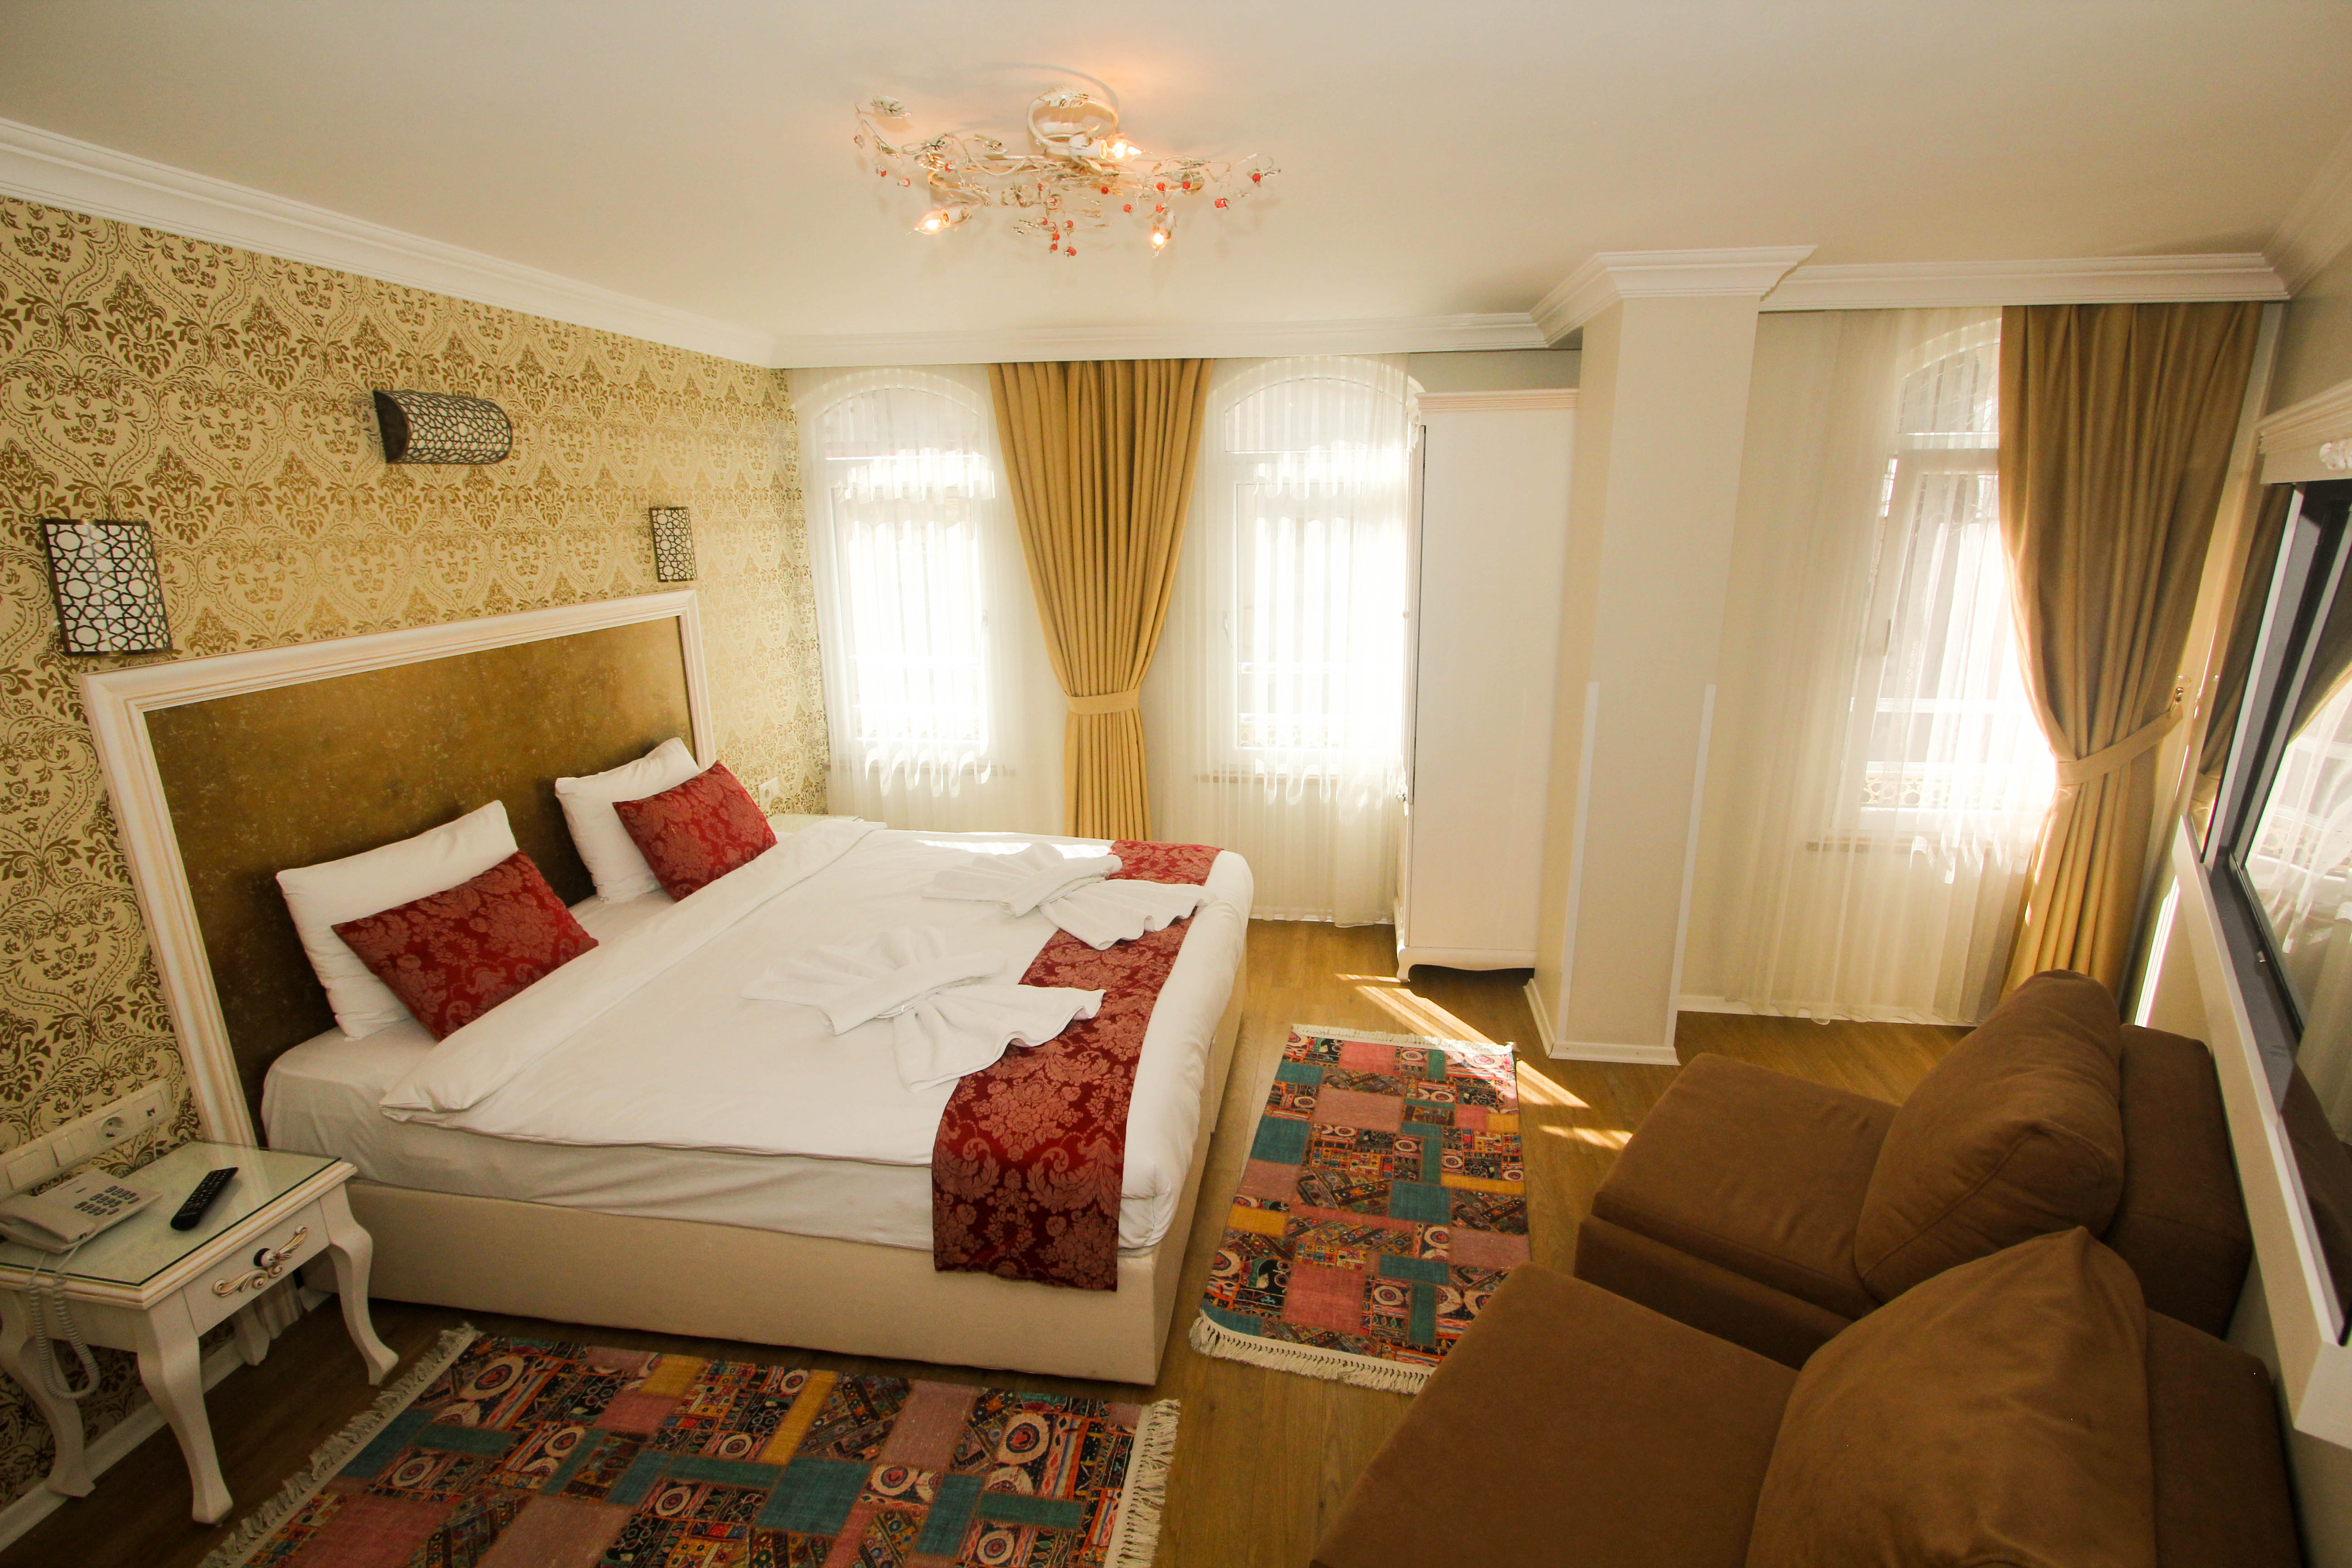 Deluxe Double / Twin Room in Venue Hotel IStanbul Sirkeci